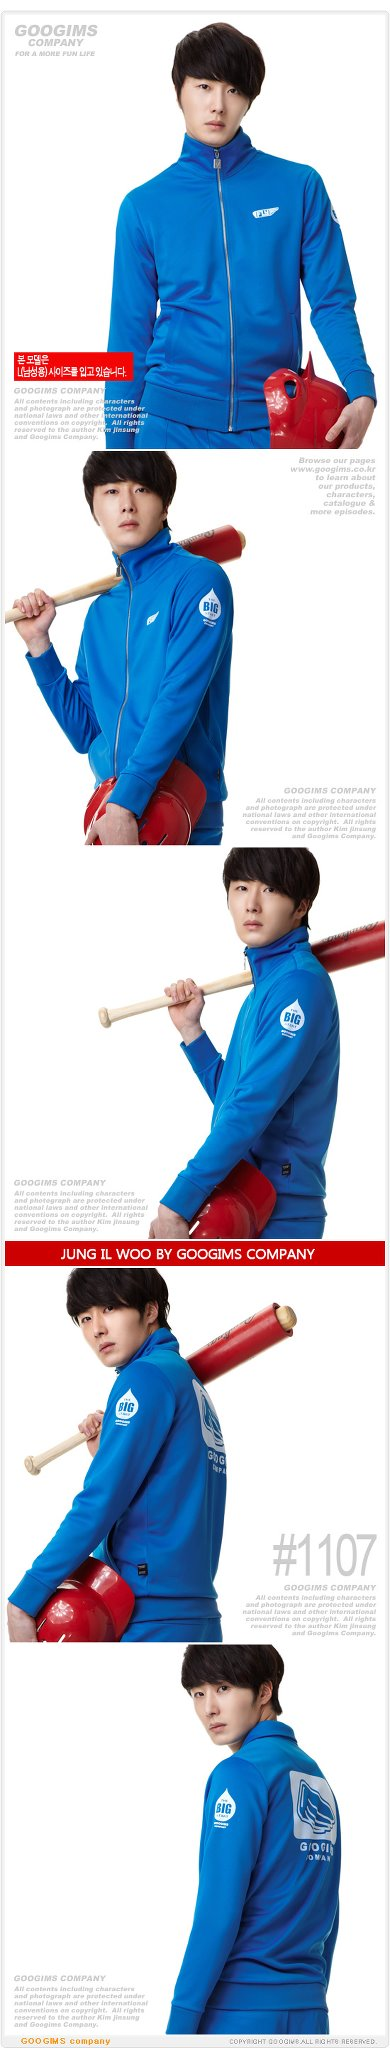 2011 10 Jung II-woo for Googims. Part 100018